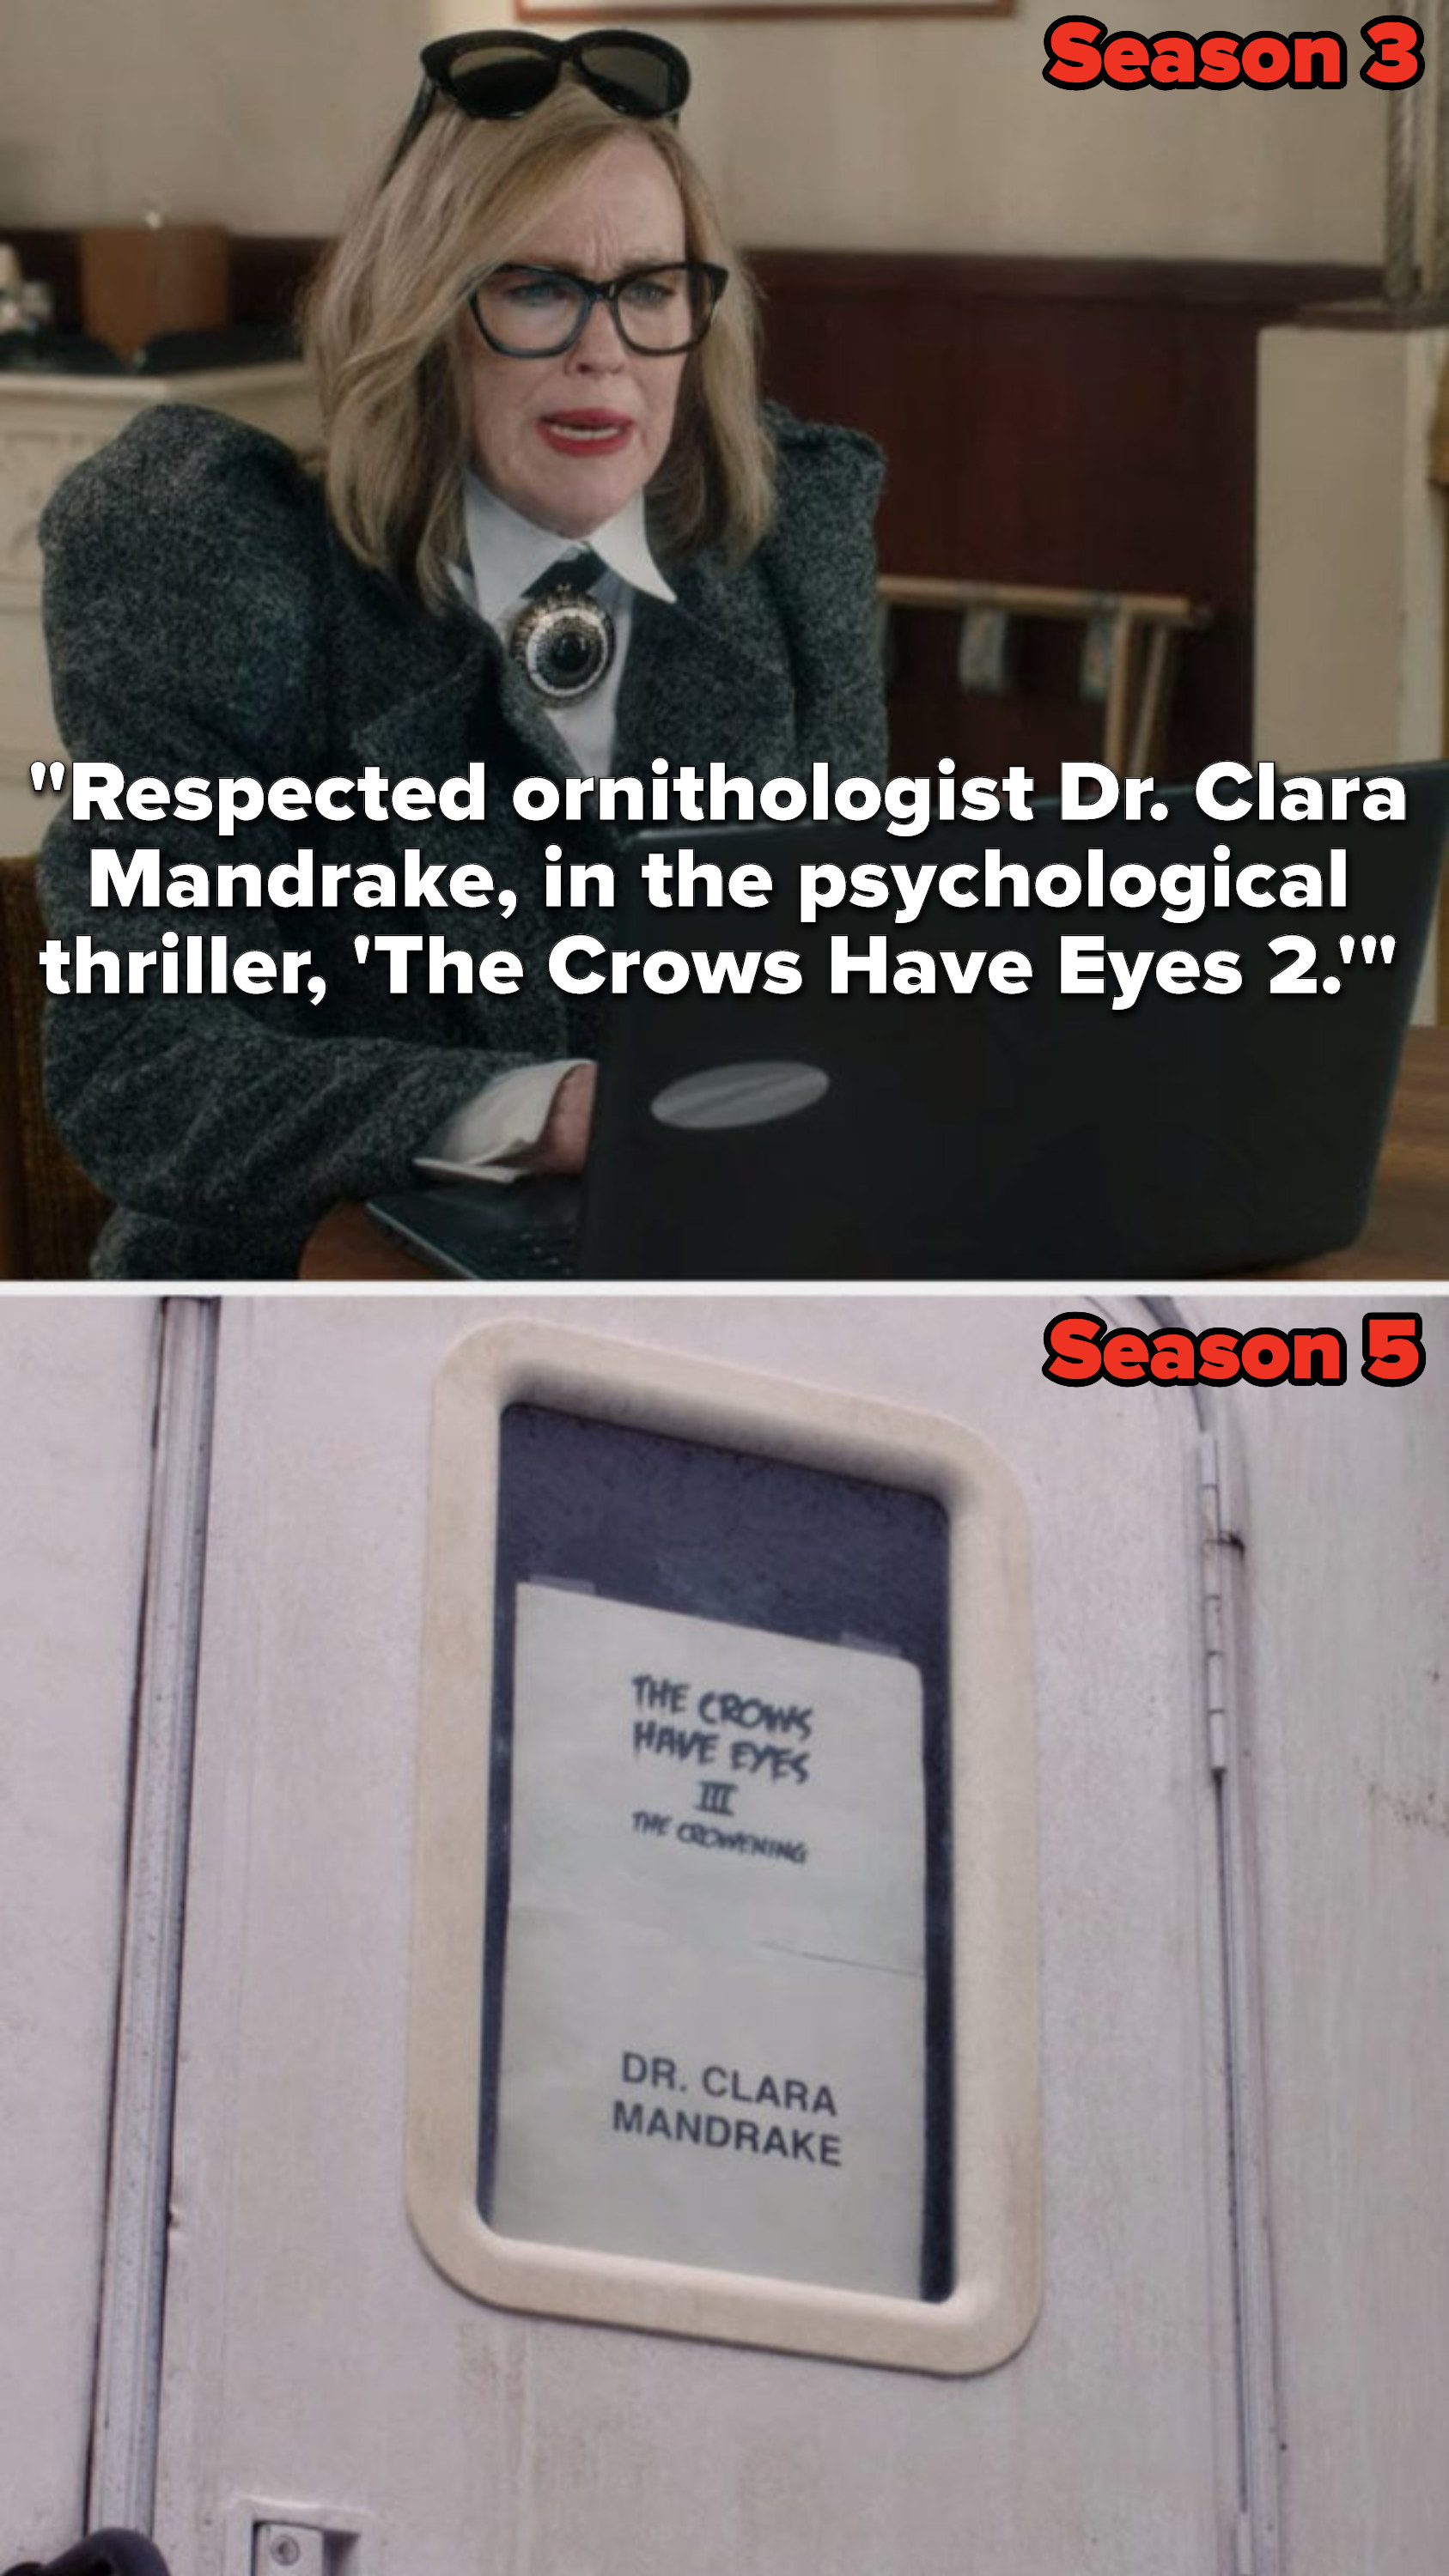 """In Season 3, Moira reads an email out loud that says, """"Respected ornithologist Doctor Clara Mandrake, in the psychological thriller, 'The Crows Have Eyes 2,'"""" then Season 5, she's playing Doctor Clara Mandrake in """"The Crows Have Eyes 3: The Crowening"""""""